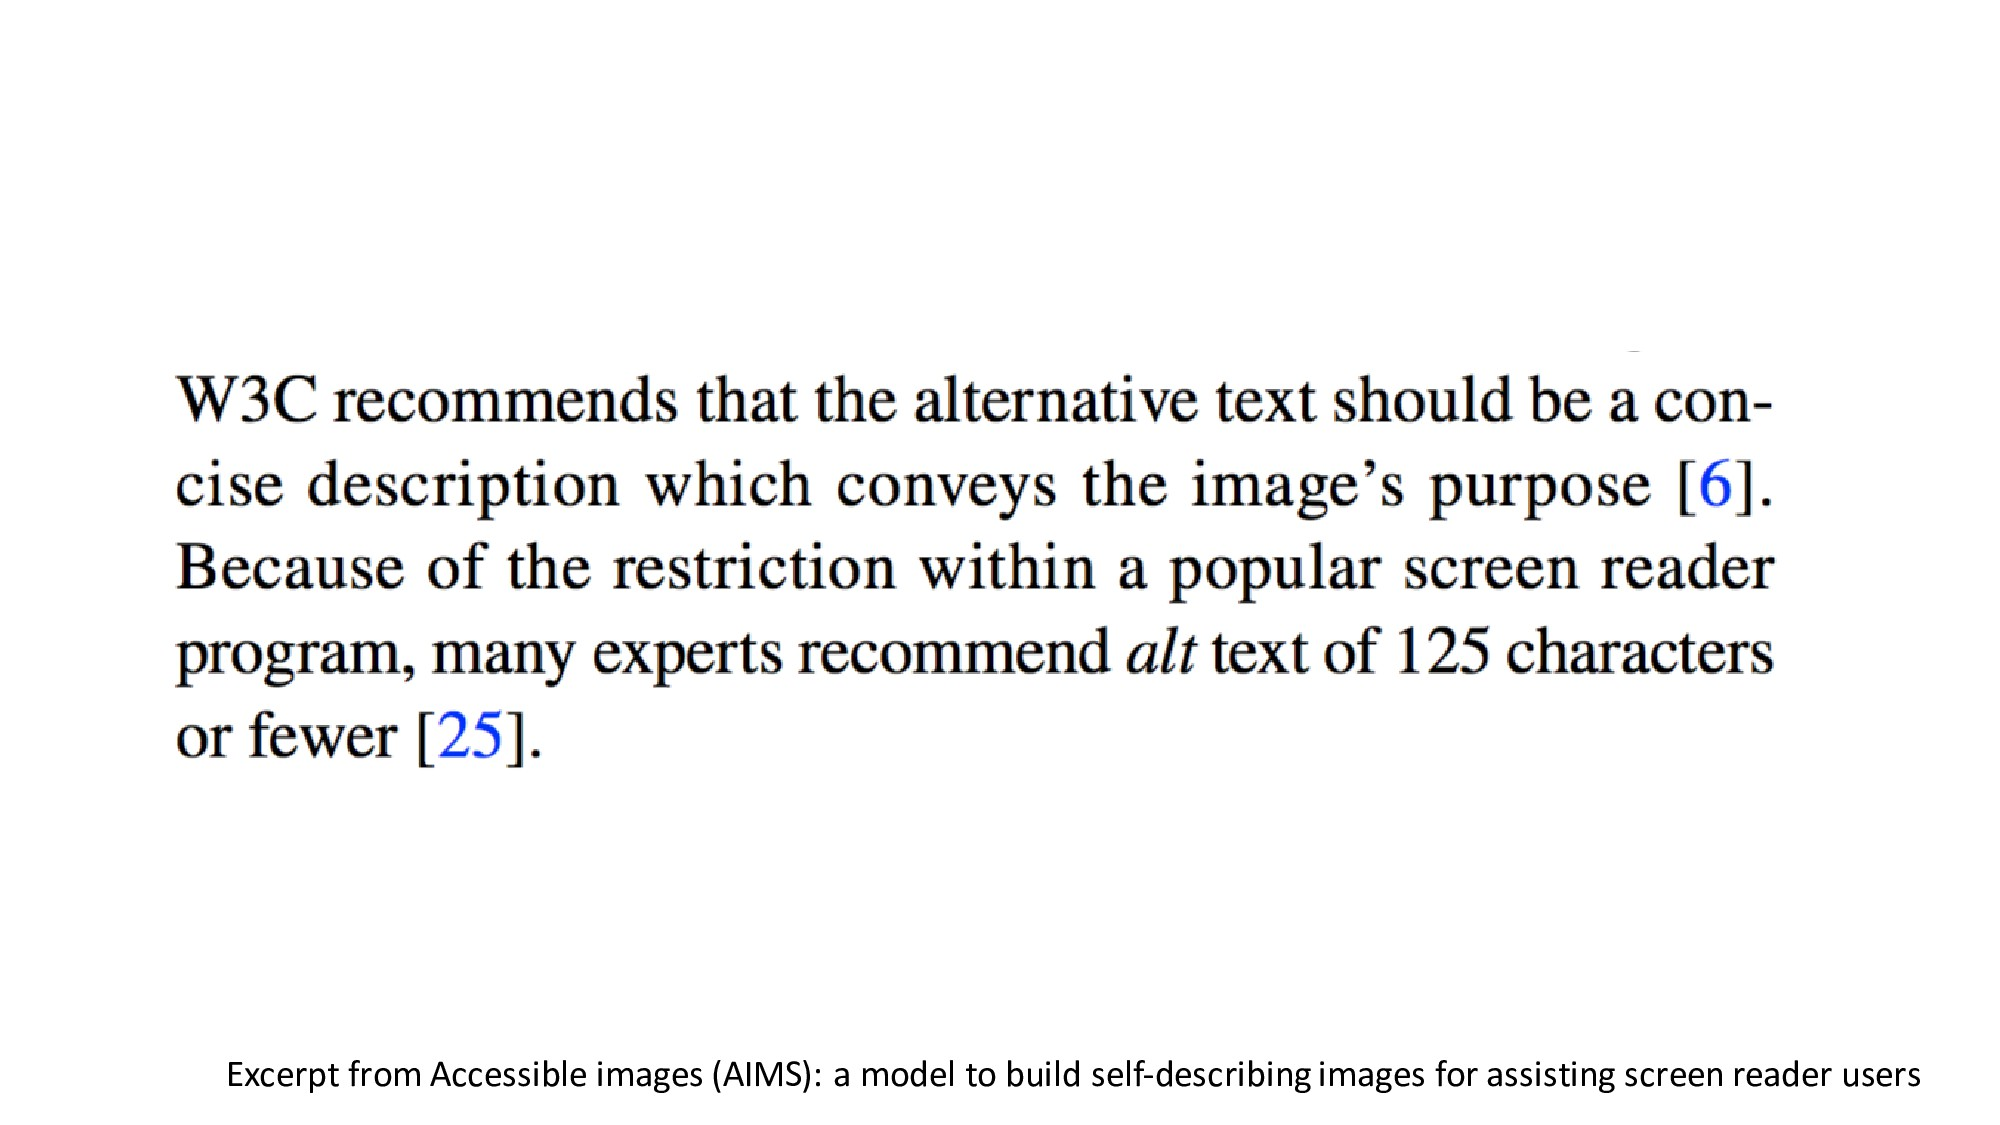 Excerpt from Accessible images (AIMS): a model ...